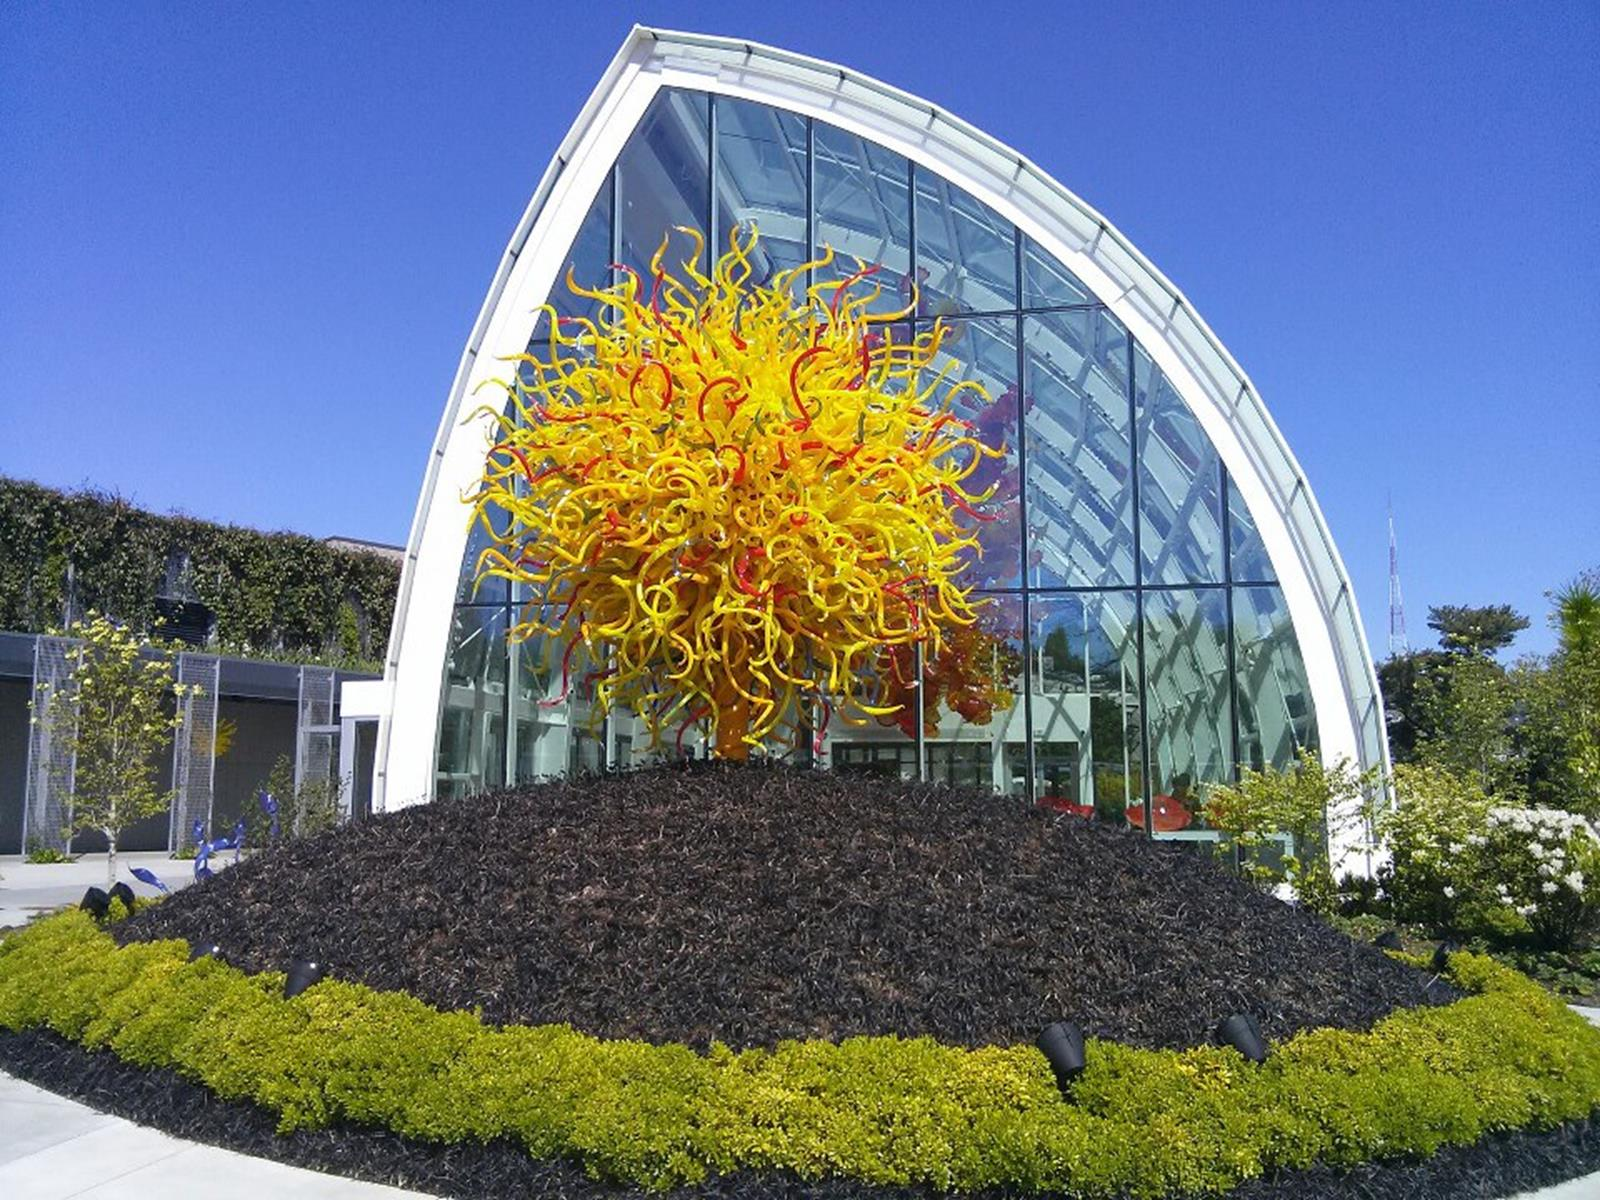 Chihuly Garden and Glass. Credit Jrcla2 at en.wikipedia